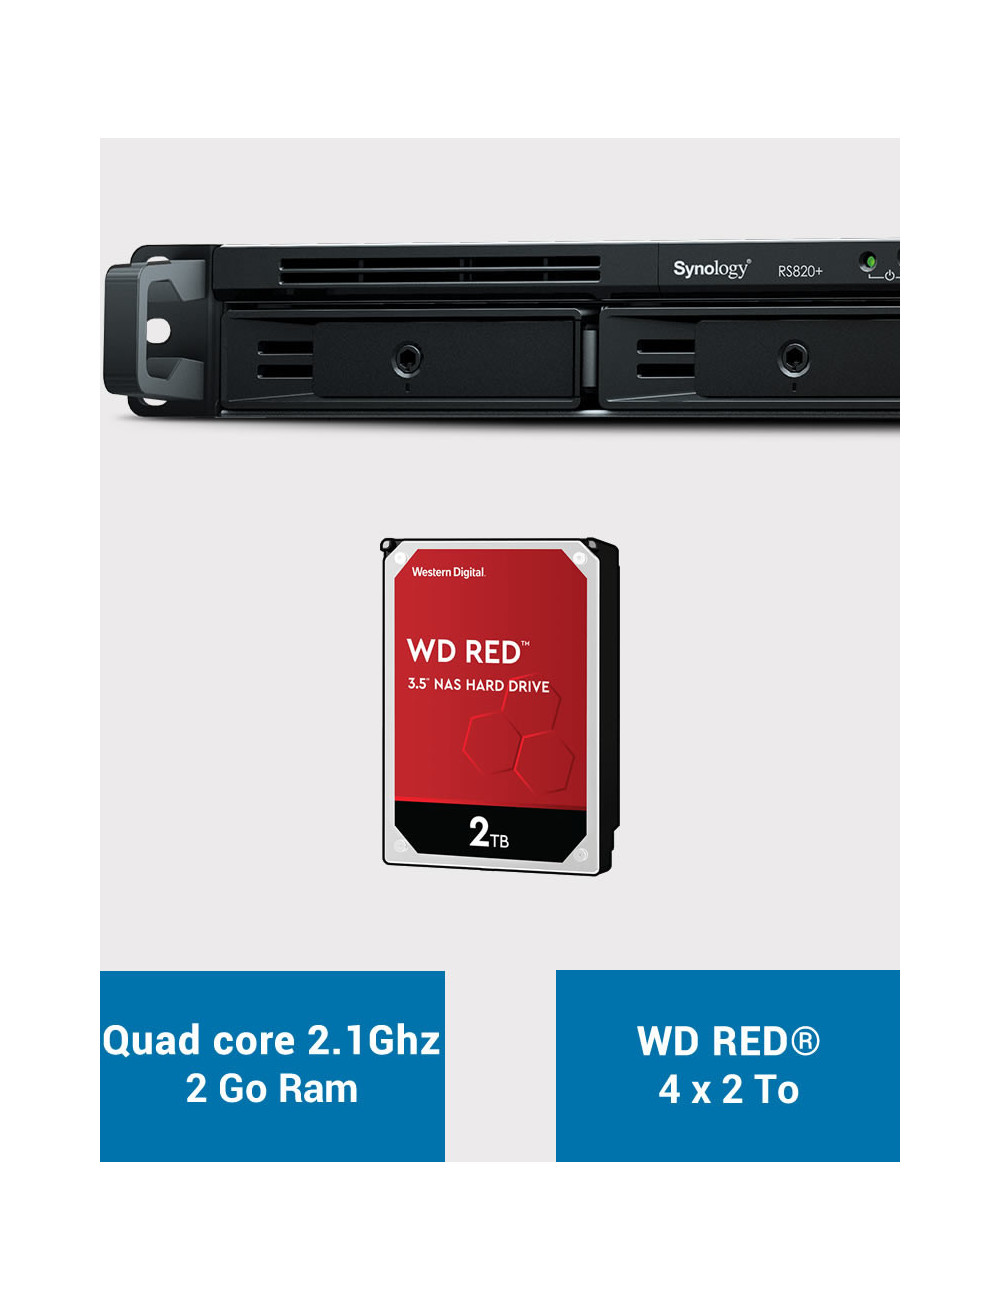 Synology RS820+ Serveur NAS WD RED 8To (4x2To)